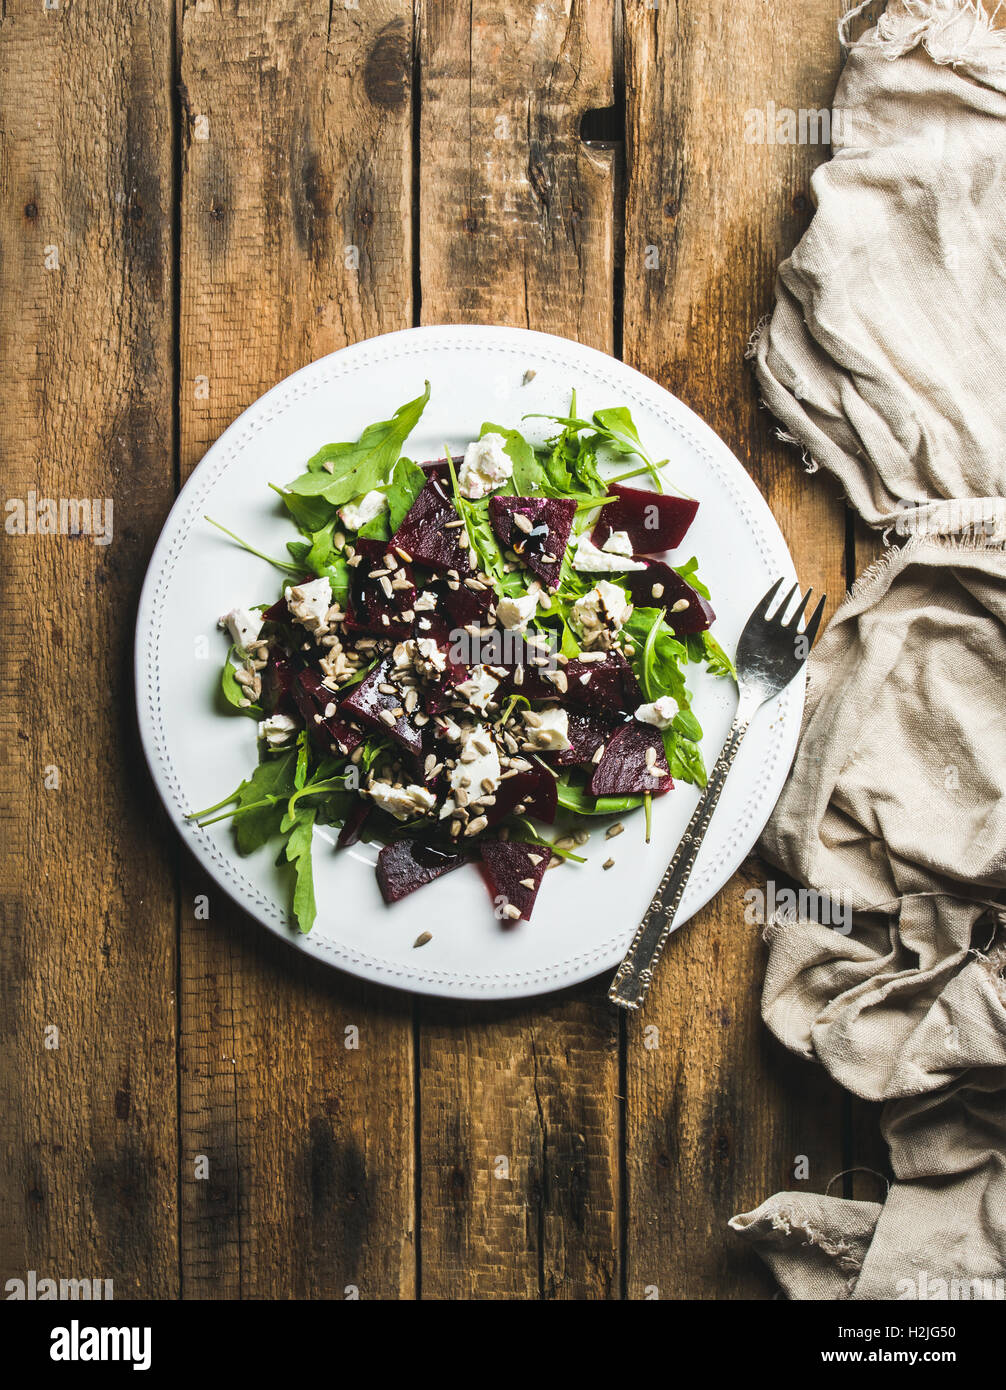 Arugula, beetroot, feta cheese and sunflower seed salad in plate - Stock Image